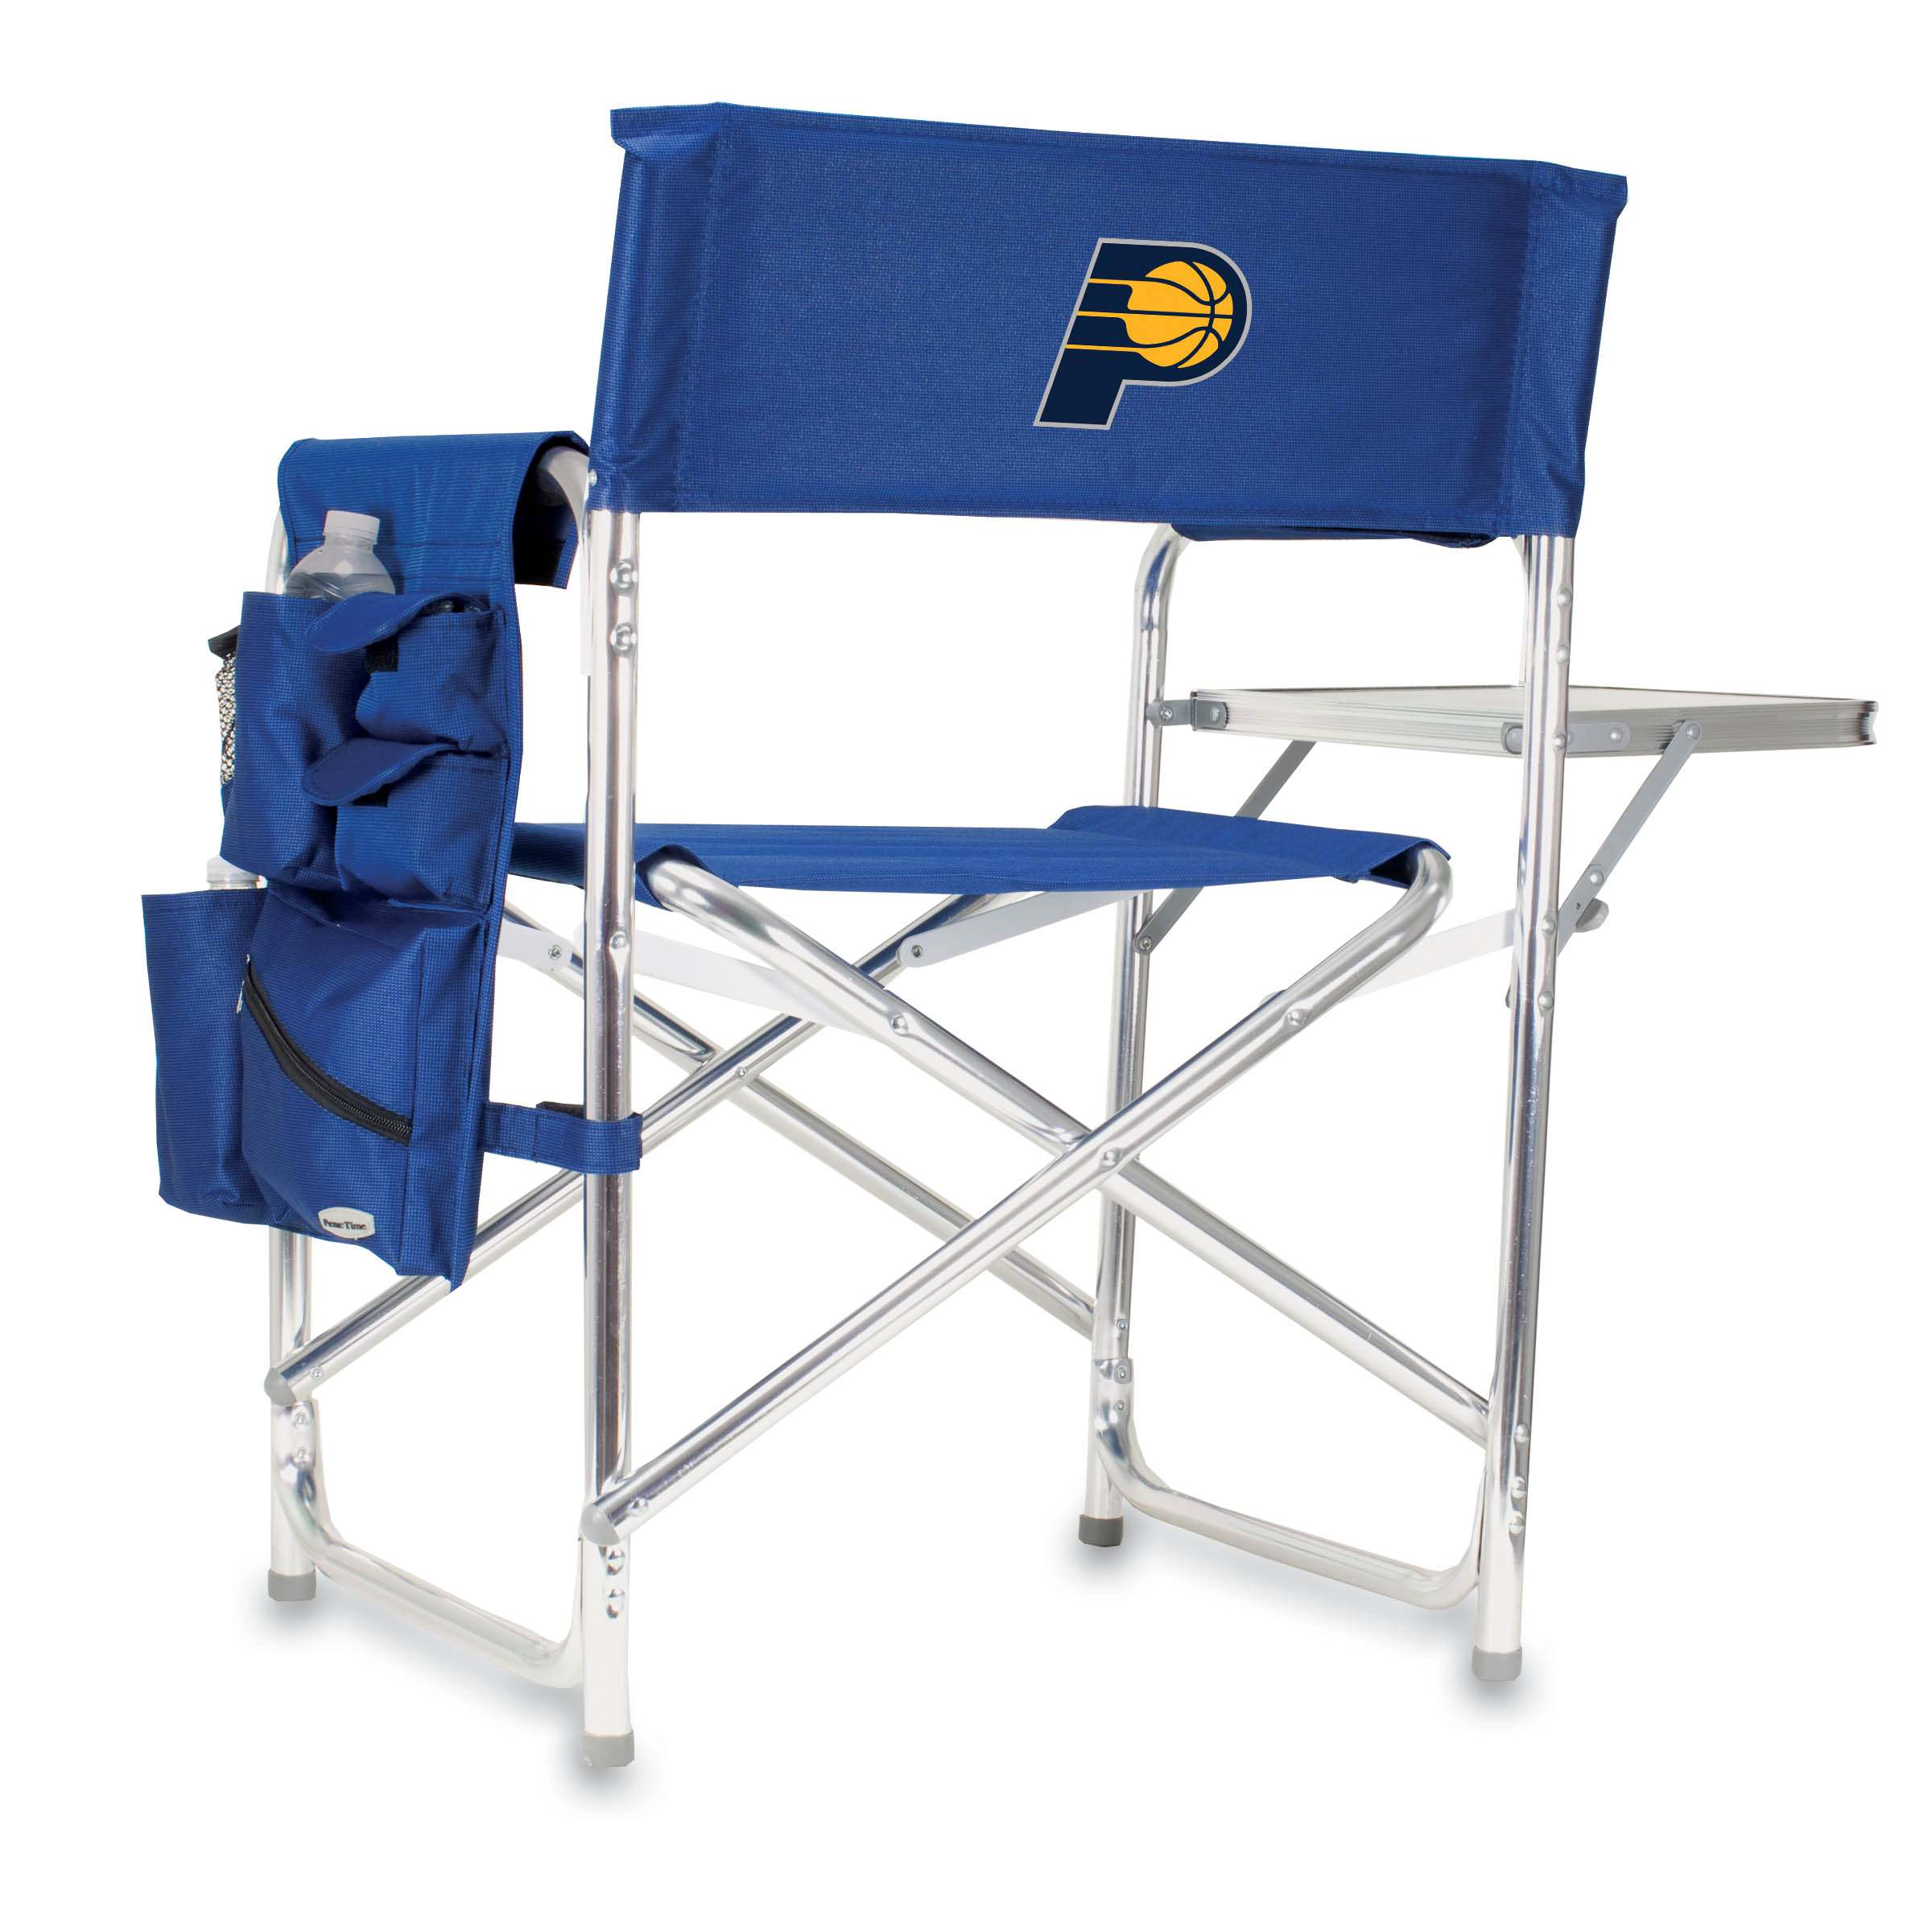 Picnic Time Nba Sports Chair Indiana Pacers